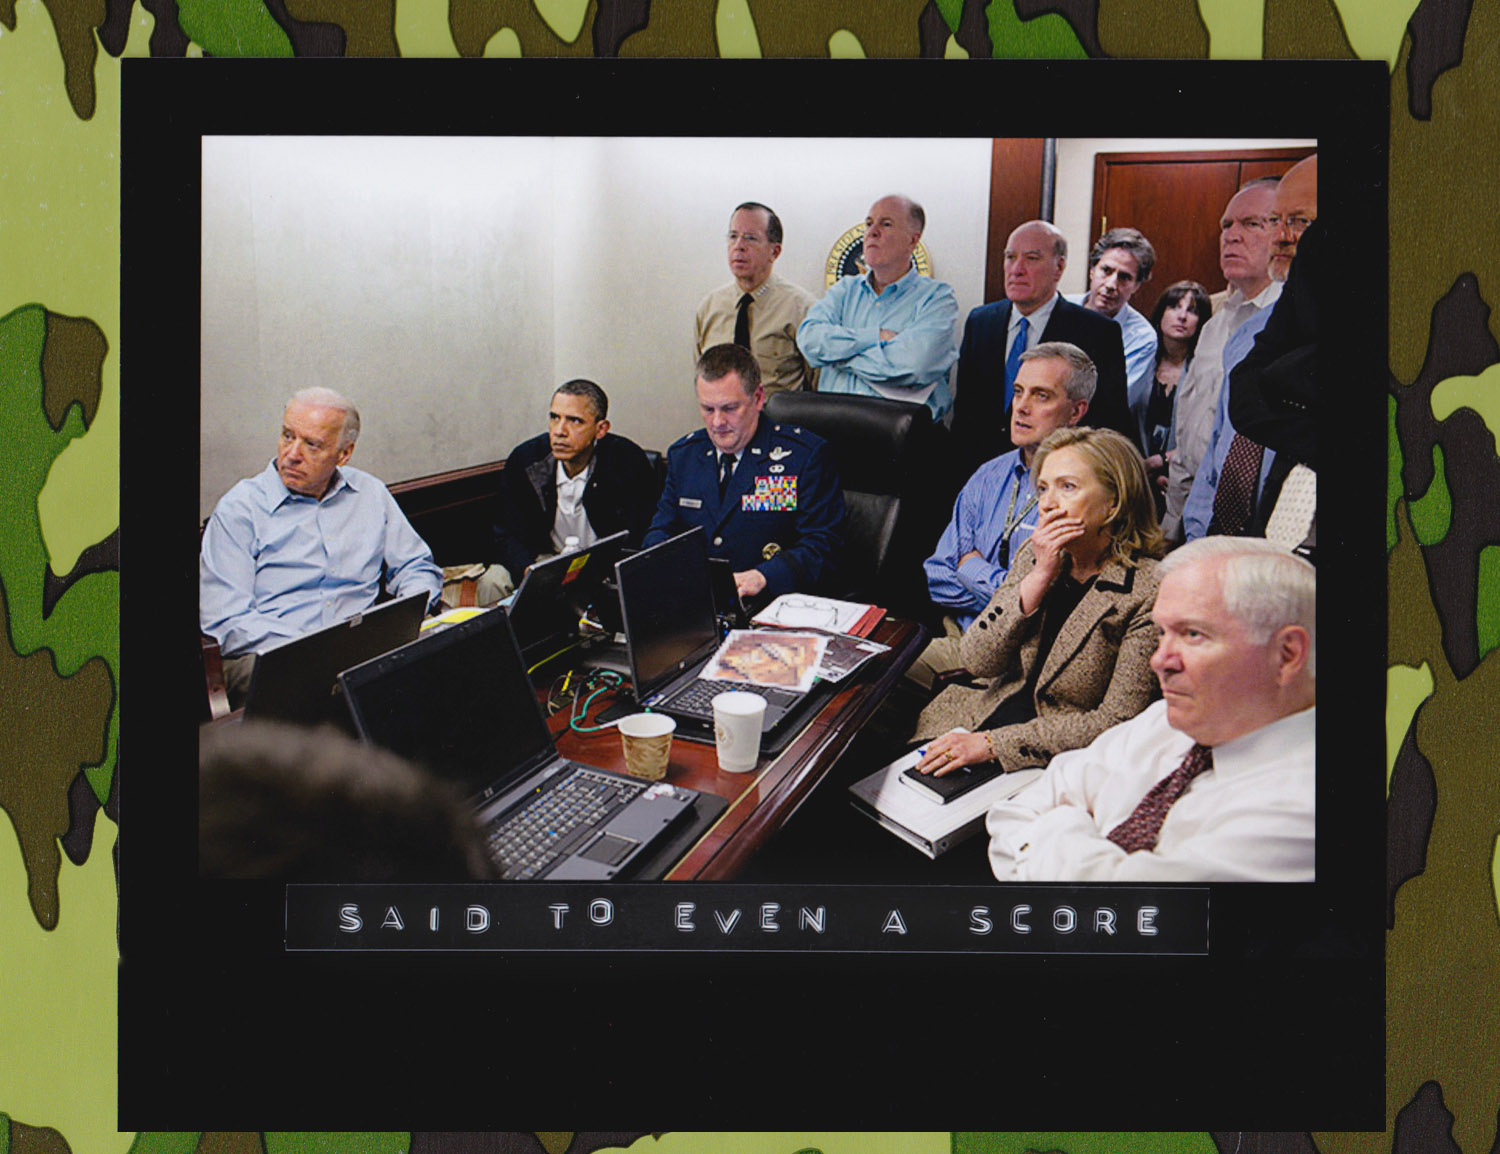 1 May 2011: U.S. President Barack Obama and his security team watch the Osama Bin Laden mission unfold while sitting in the White House Situation Room, thousands of miles away from the al-Qaeda leader's compound in Abbottabad, Pakistan. The 'real time' pictures were reportedly relayed to the White House via a video camera fixed to the helmet of a U.S. Navy Seal. (Photo: Pete Souza/White House)